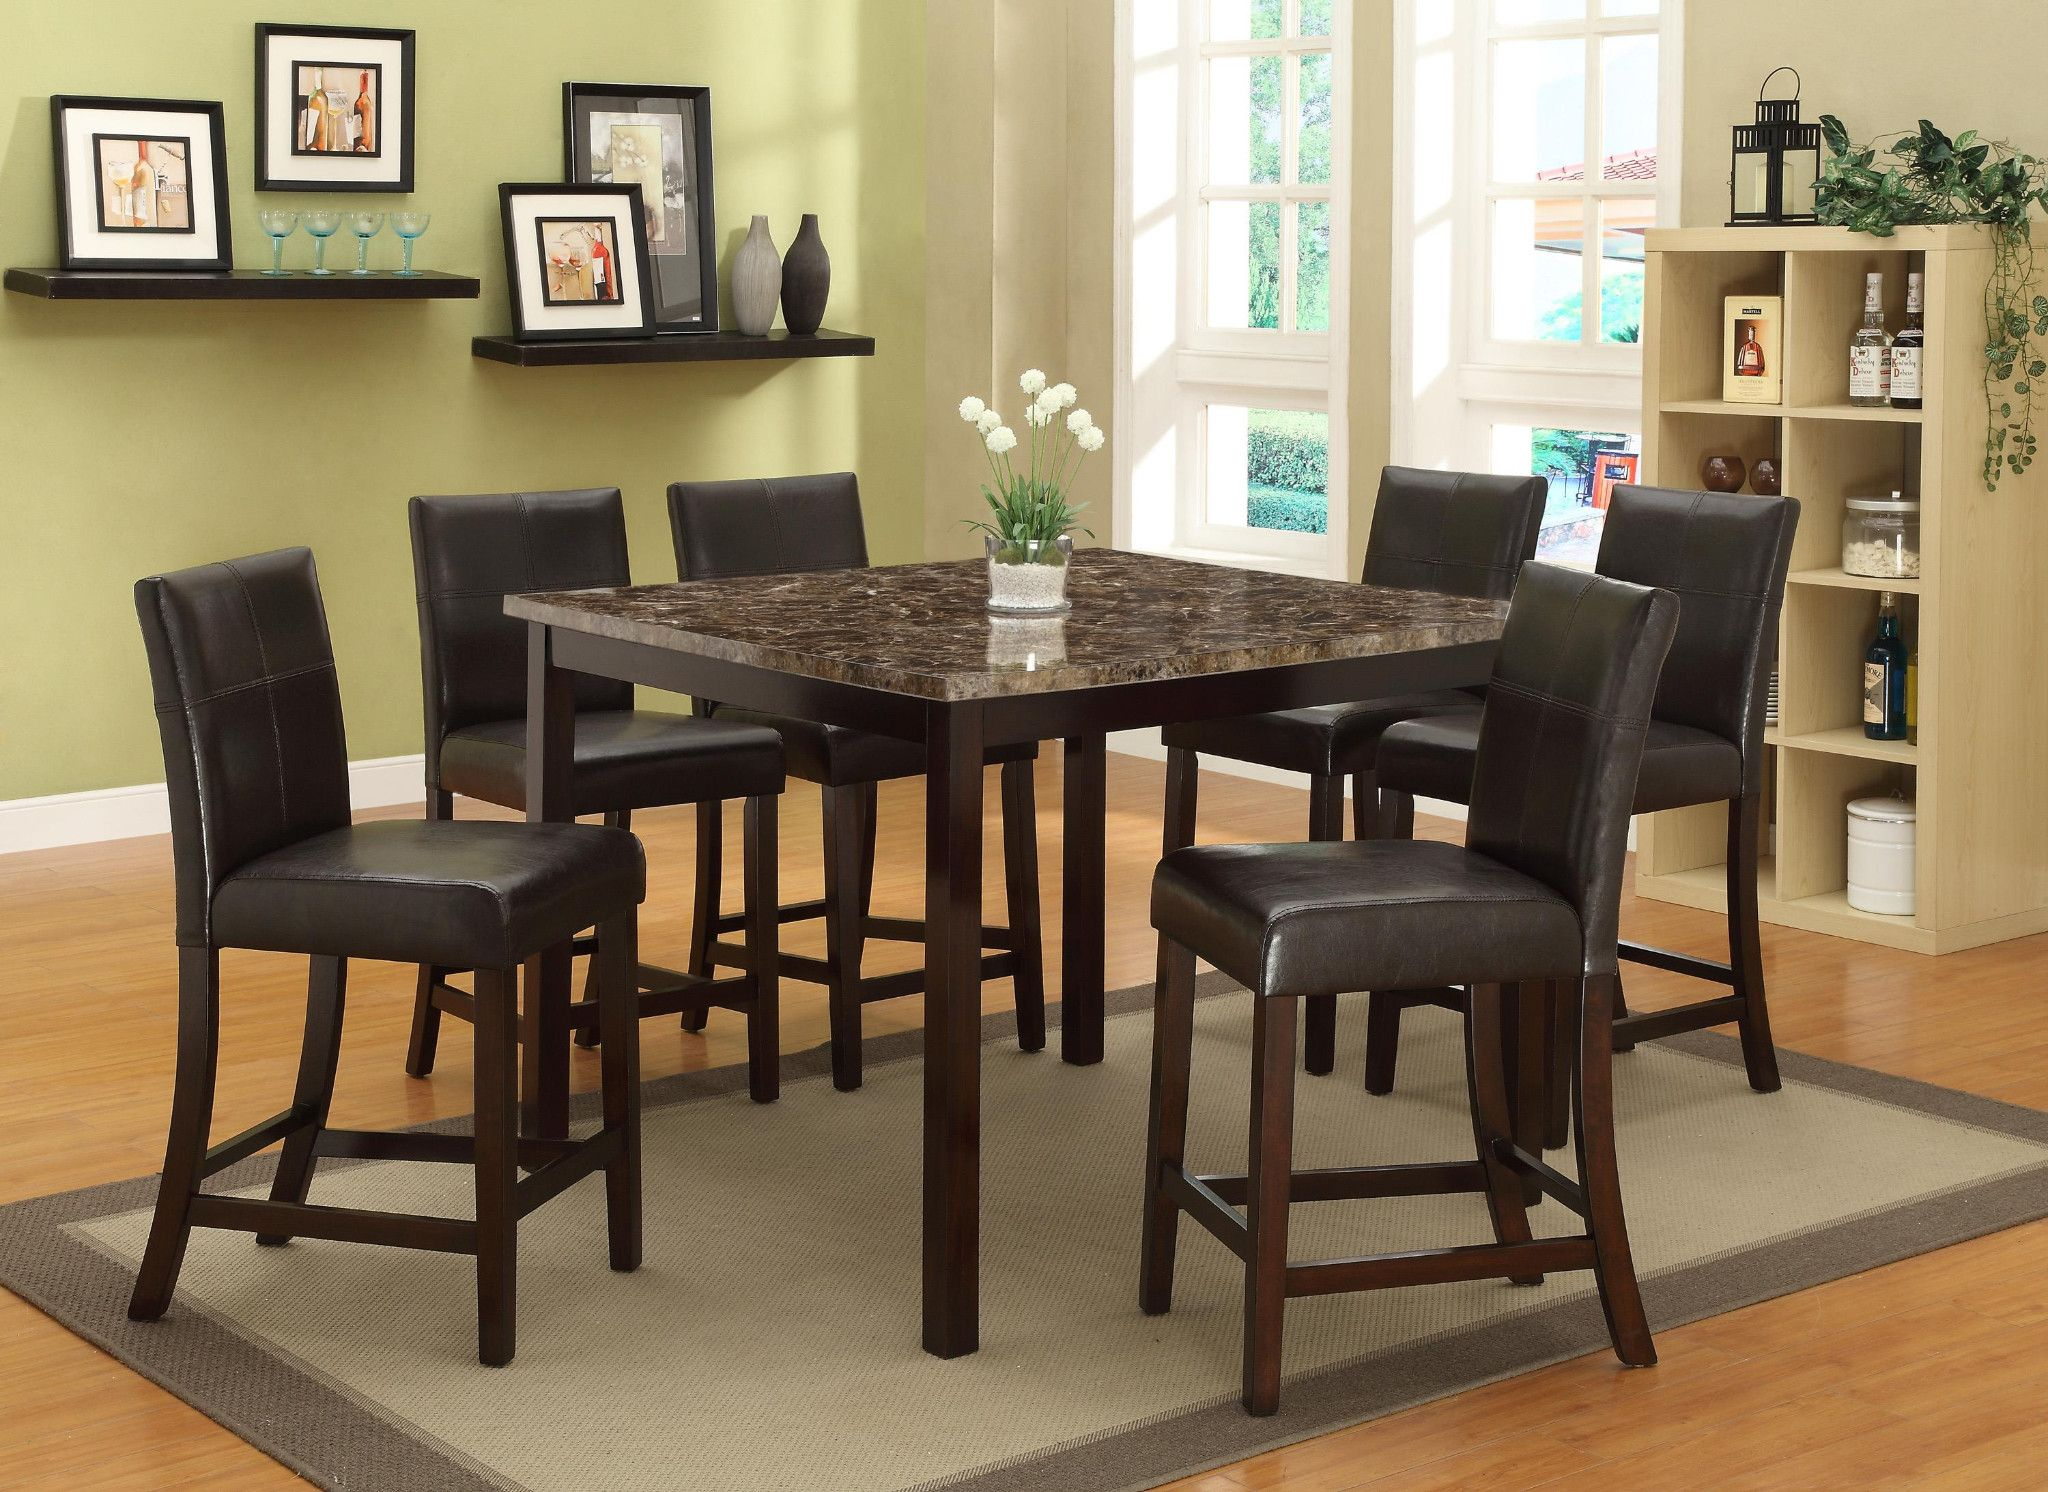 36 X 48 Kitchen Table And Chairs Fascinating Pin On Pub Dinettes 3690 1